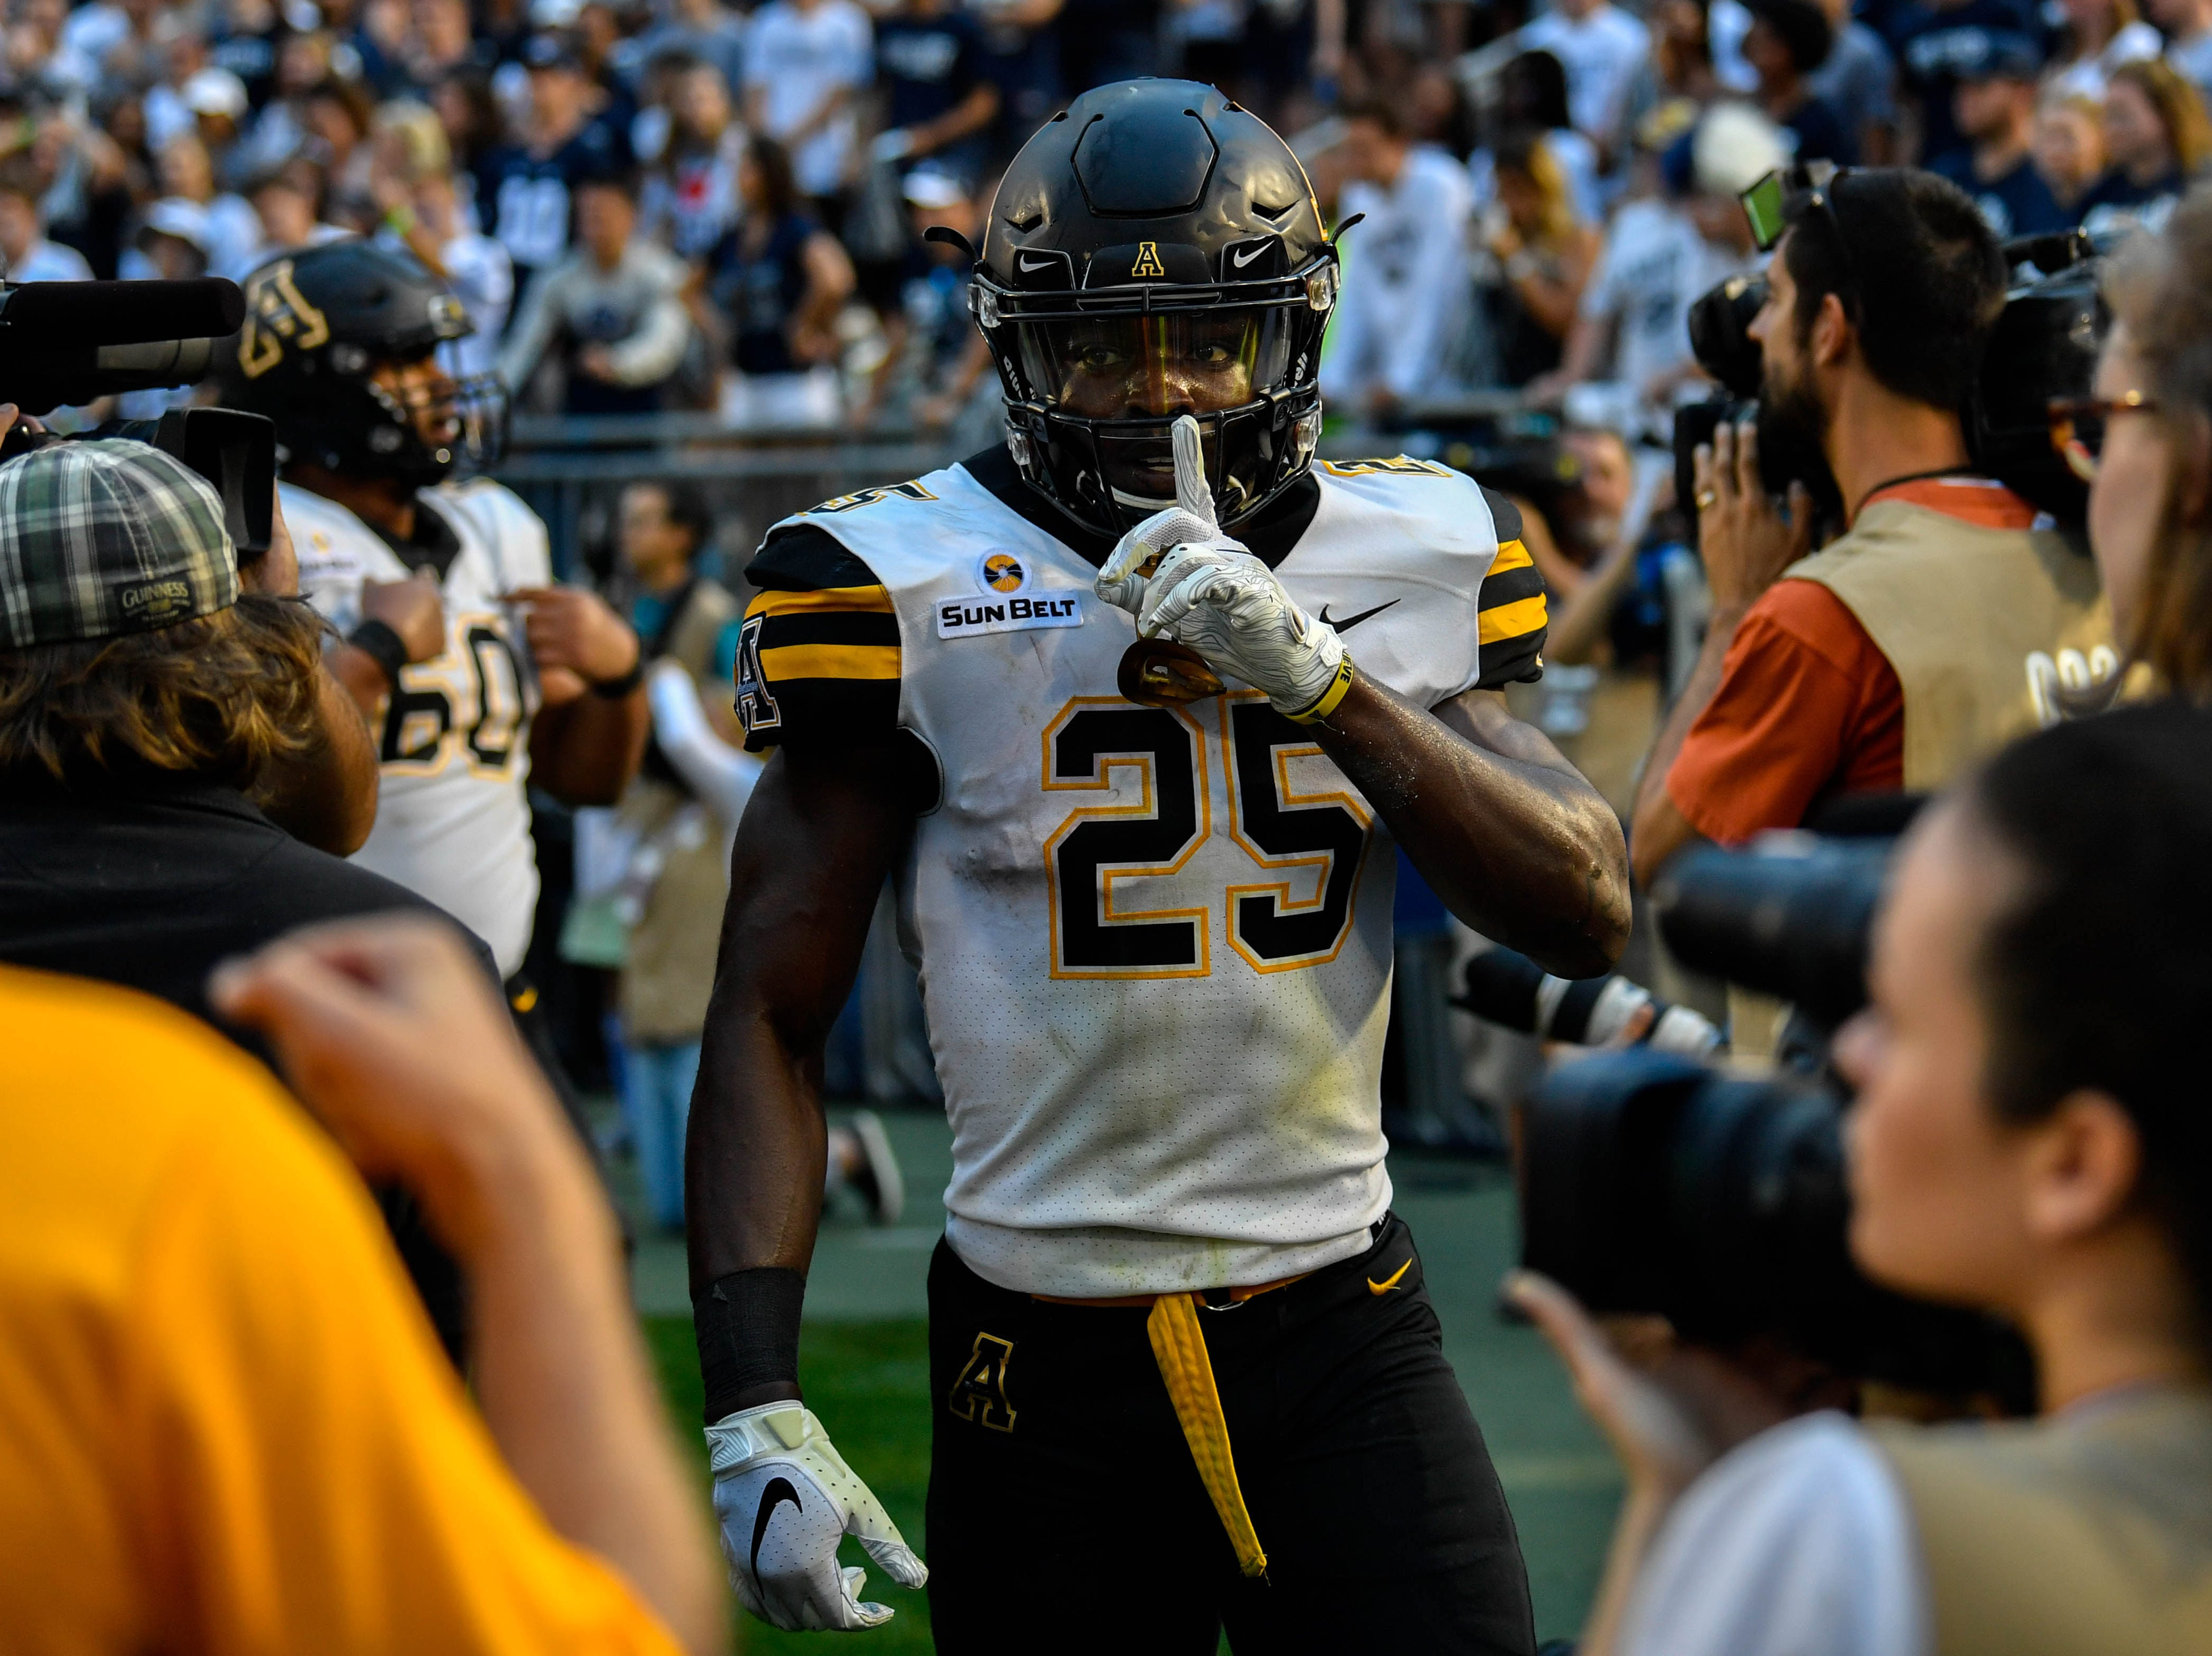 Jalin Moore silences the crowd after scoring a touchdown, and giving Appalachian State the lead on September 1, 2018.